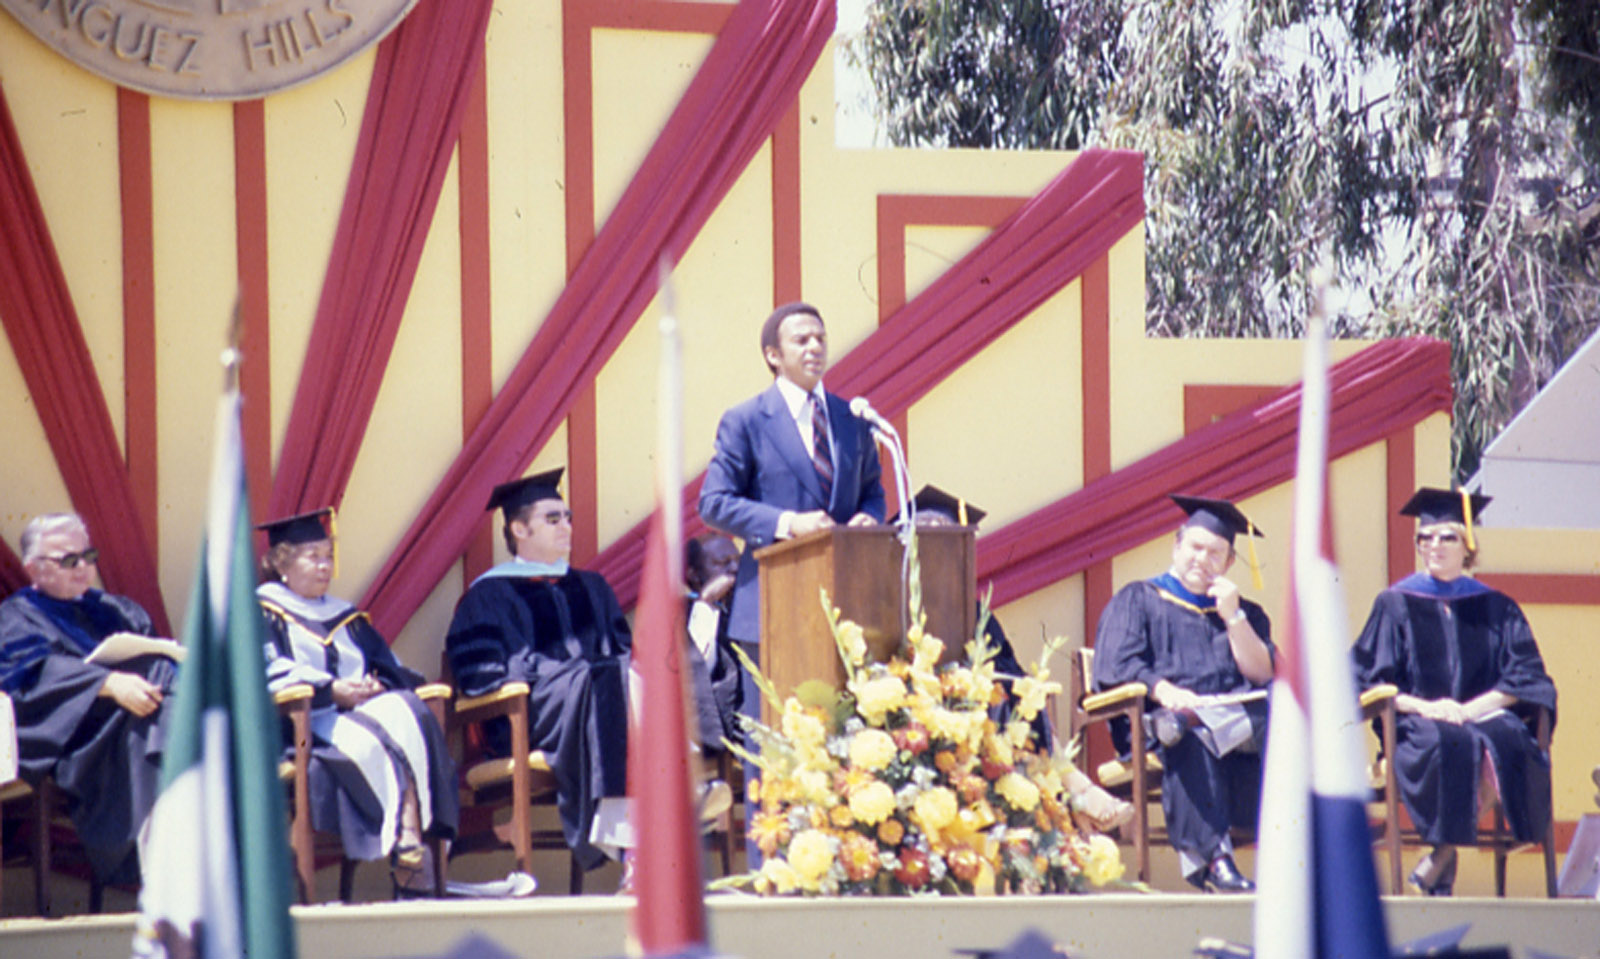 Former Ambassador to the United Nations Andrew Young speaks at Commencement, June 14, 1980.